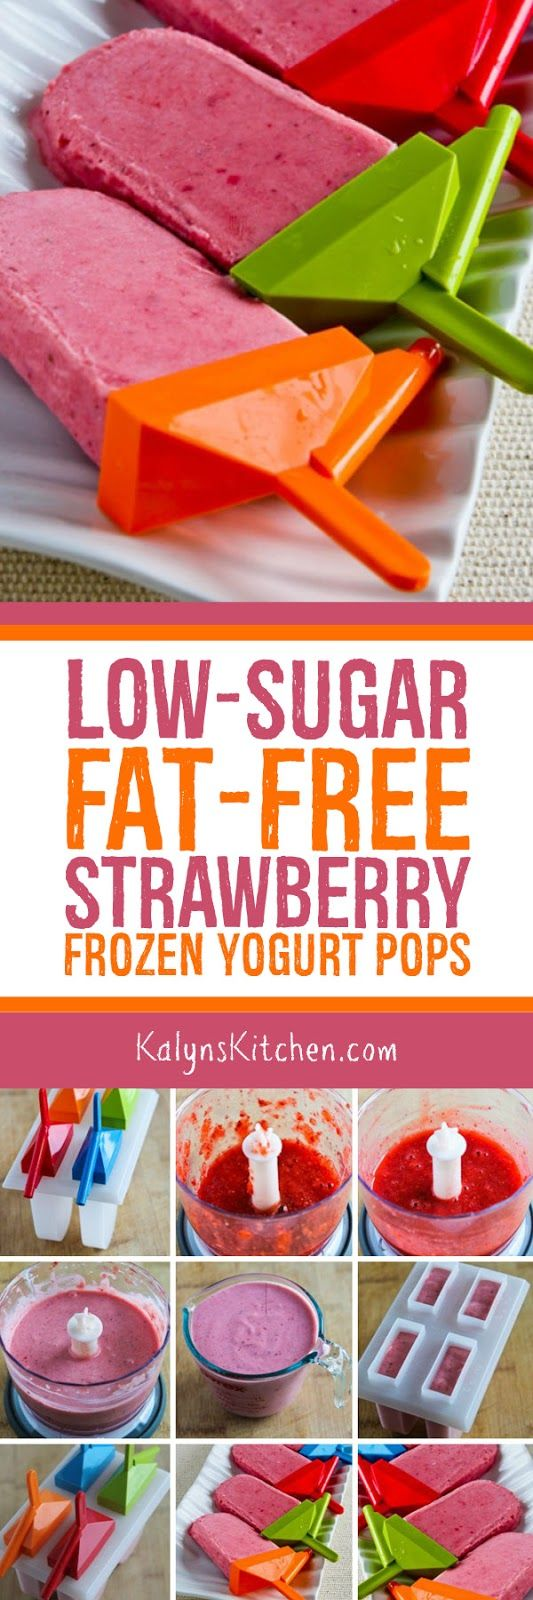 I had fun making these Low-Sugar Fat-Free Strawberry Frozen Yogurt Pops with some of my favorite kids; use full-fat yogurt and your favorite sweetener if you prefer. [found on Kalyn's Kitchen.com]